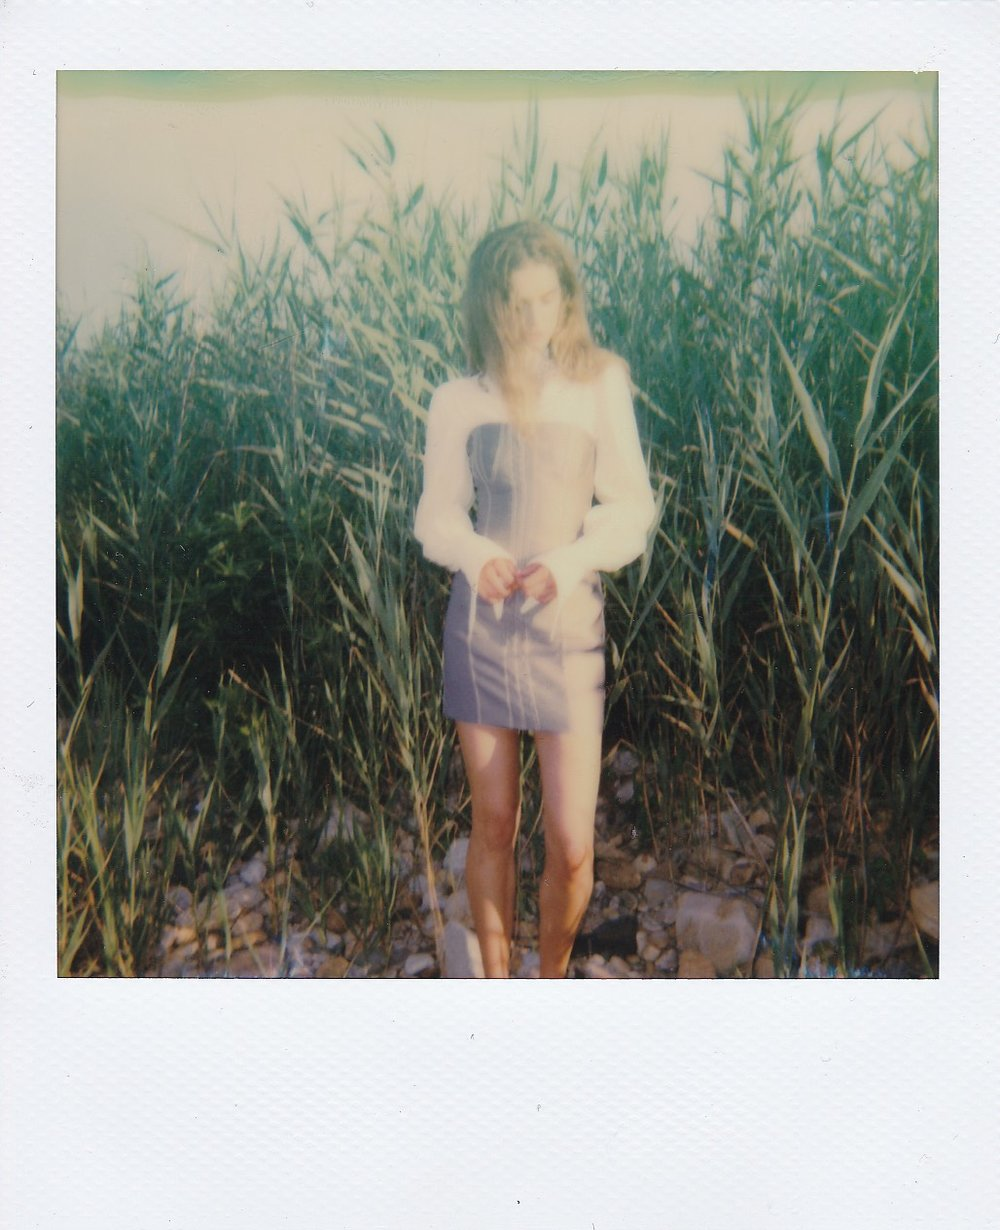 Fashion Polaroid by Fiona y Eduardo